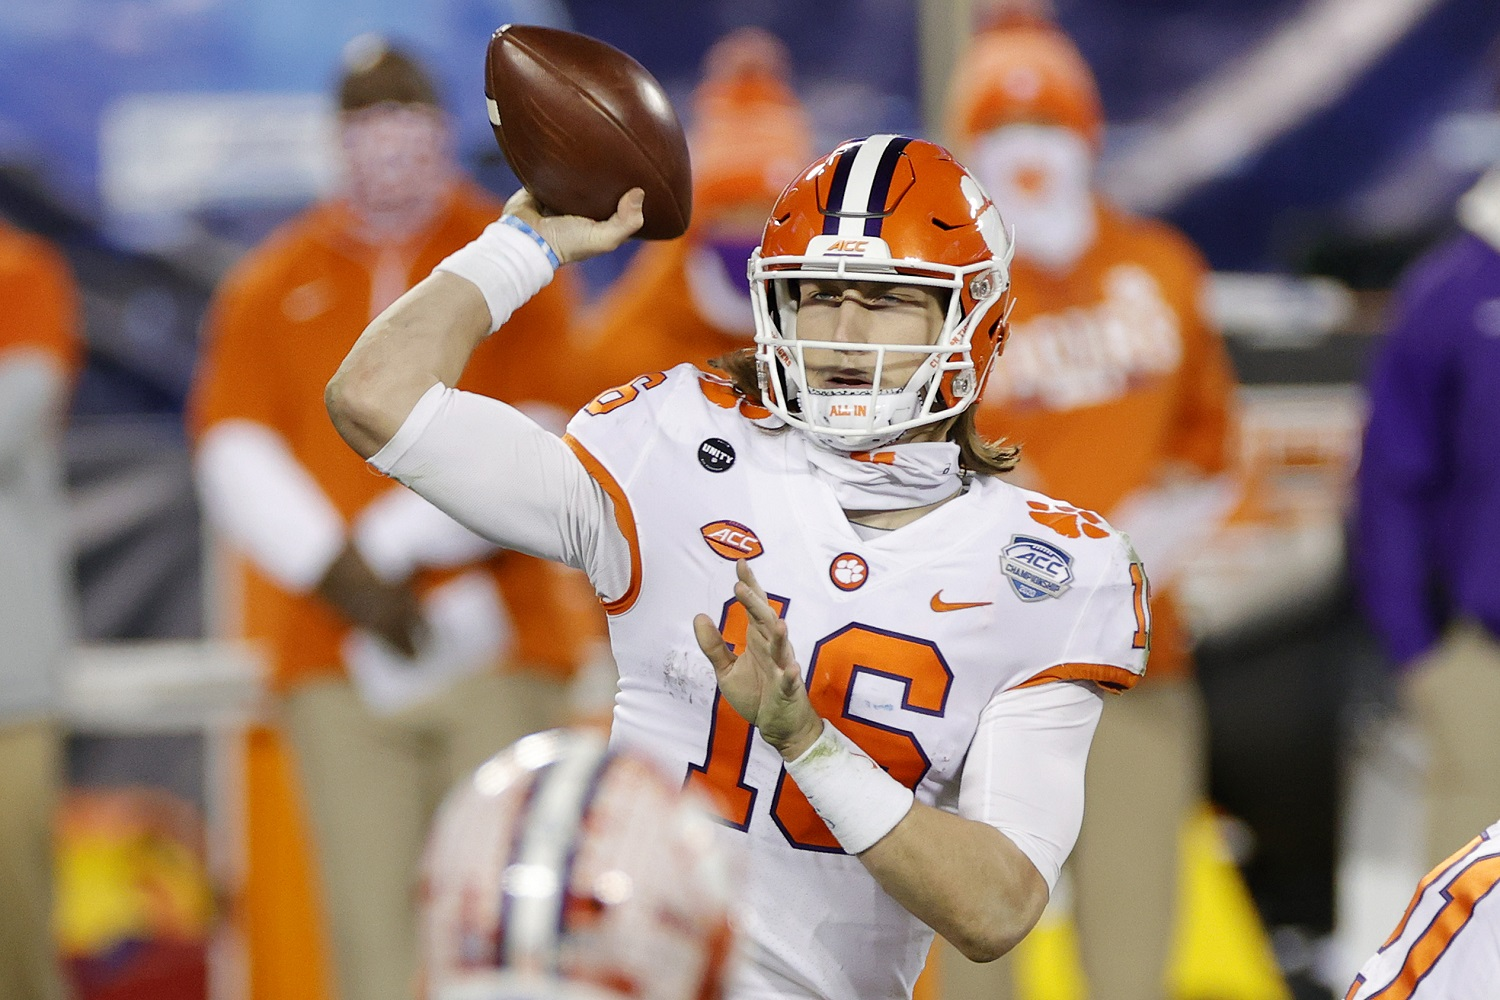 Quarterback Trevor Lawrence of Clemson has a busy month of April ahead, beginning with his wedding on April 10 and then his likely selection as the top pick of the NFL draft on April 29. | Jared C. Tilton/Getty Images